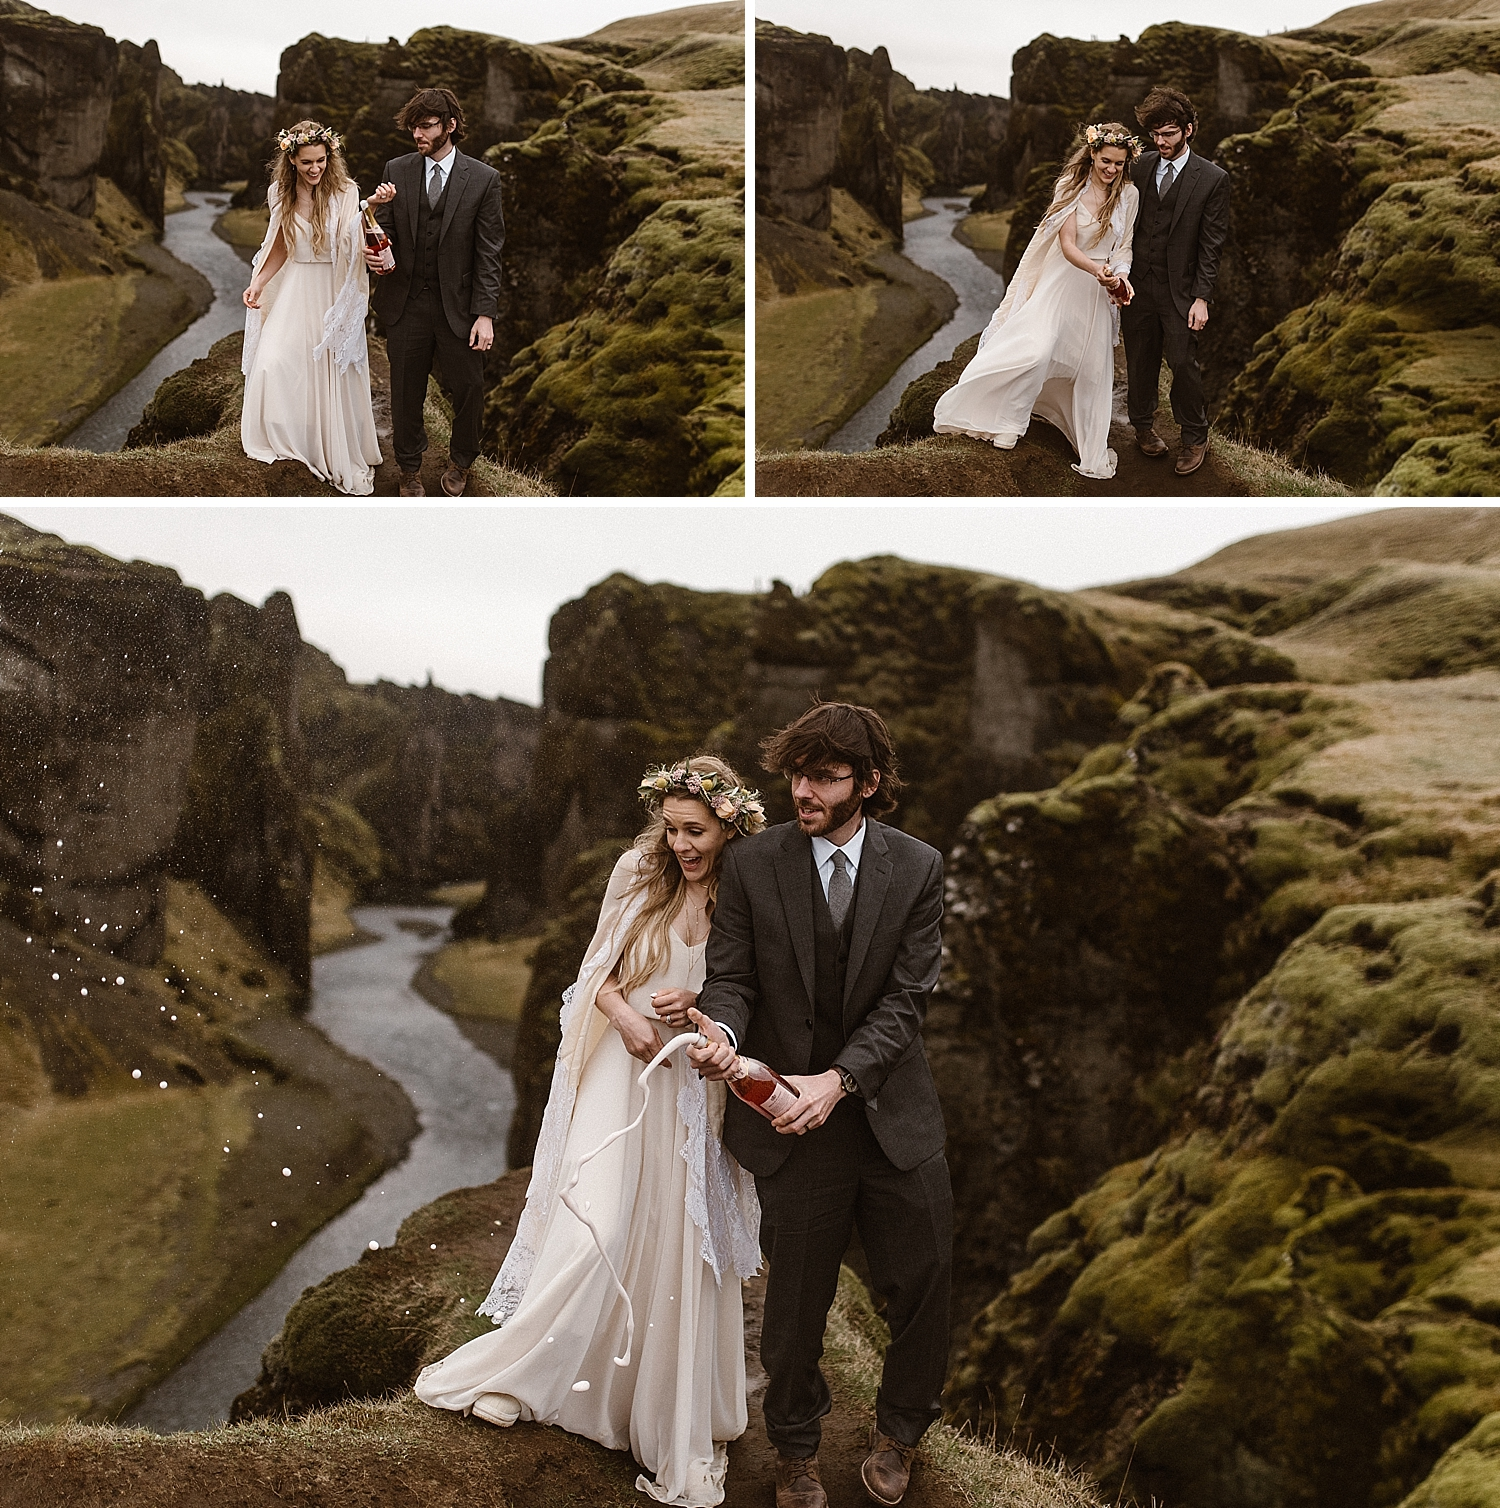 No wedding, elopement or celebration is truly complete without popping off a bottle of something fizzy! This stunning couple eloped up Fjadrargljufur Canyon in Iceland taking only their traveling wedding photographer, Maddie Mae, with them!